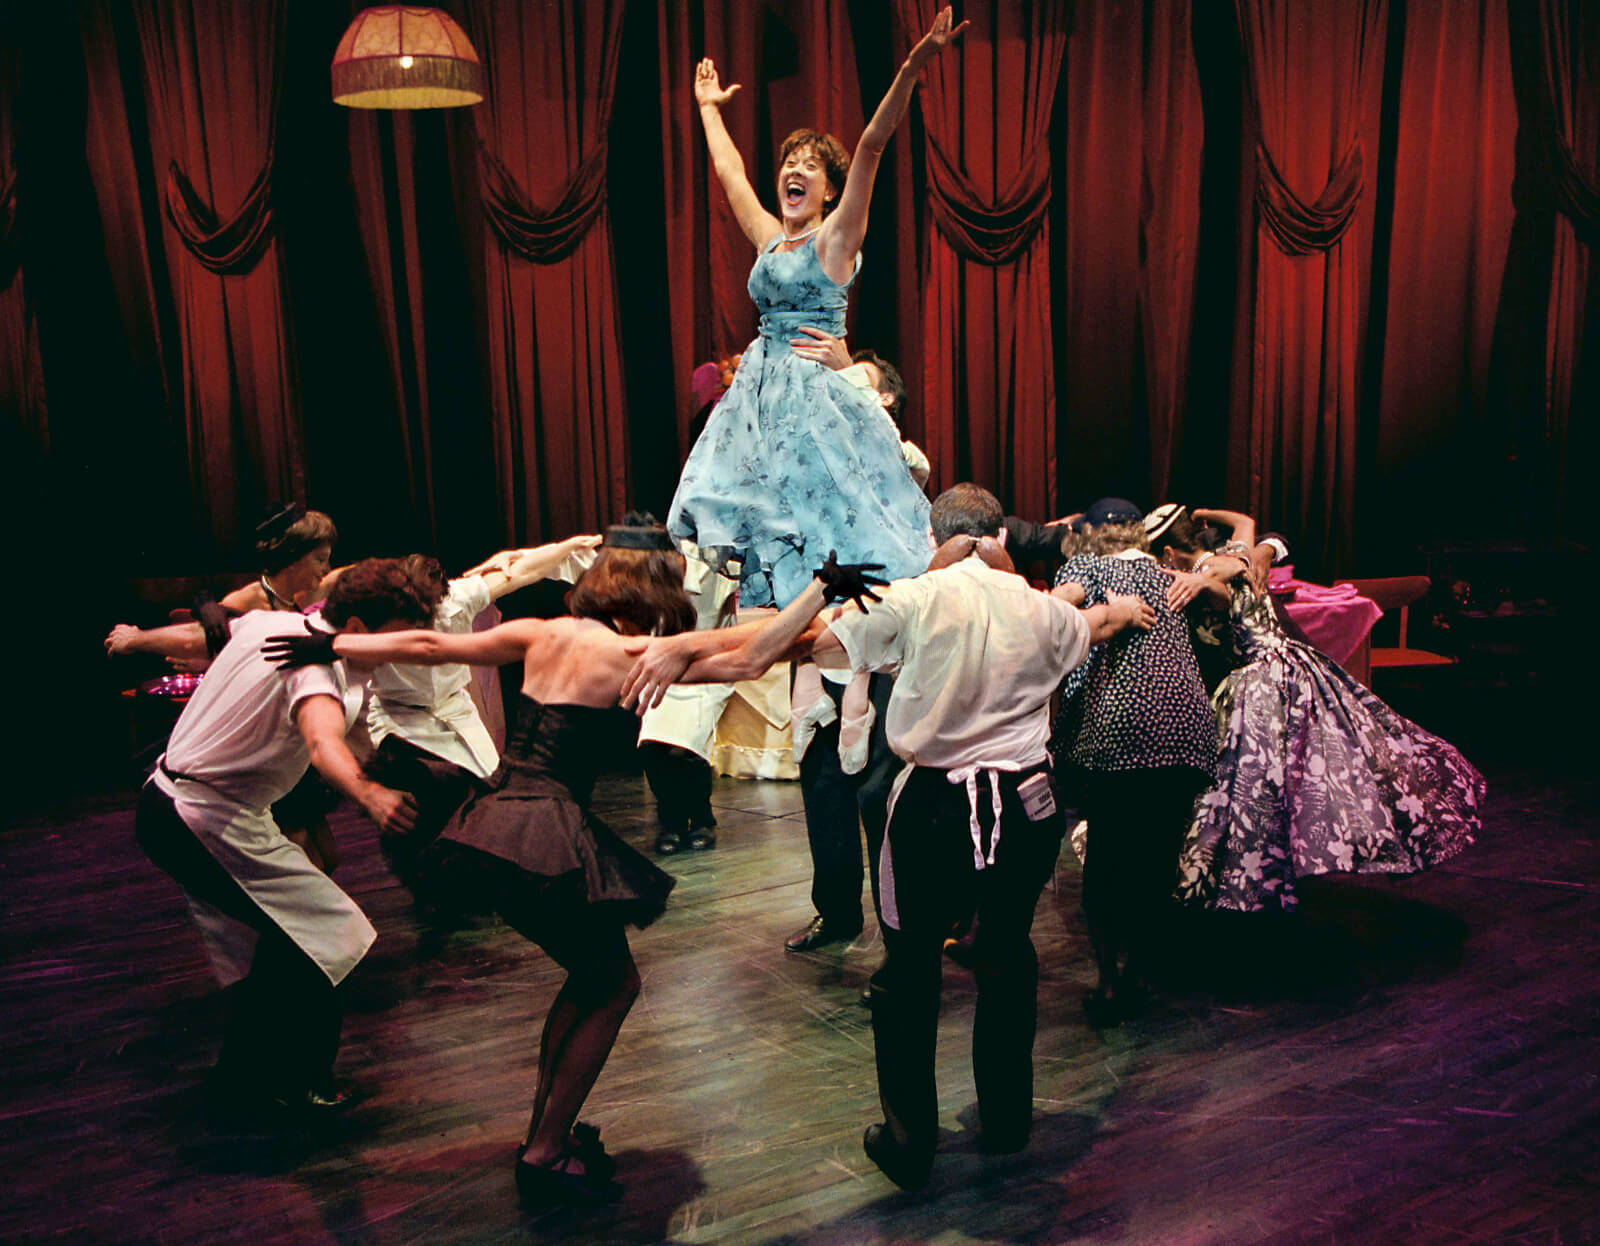 Wife (Karen Ziemba) wearing a blue dress is lifted with outstretched arms while surrounded by the full company.